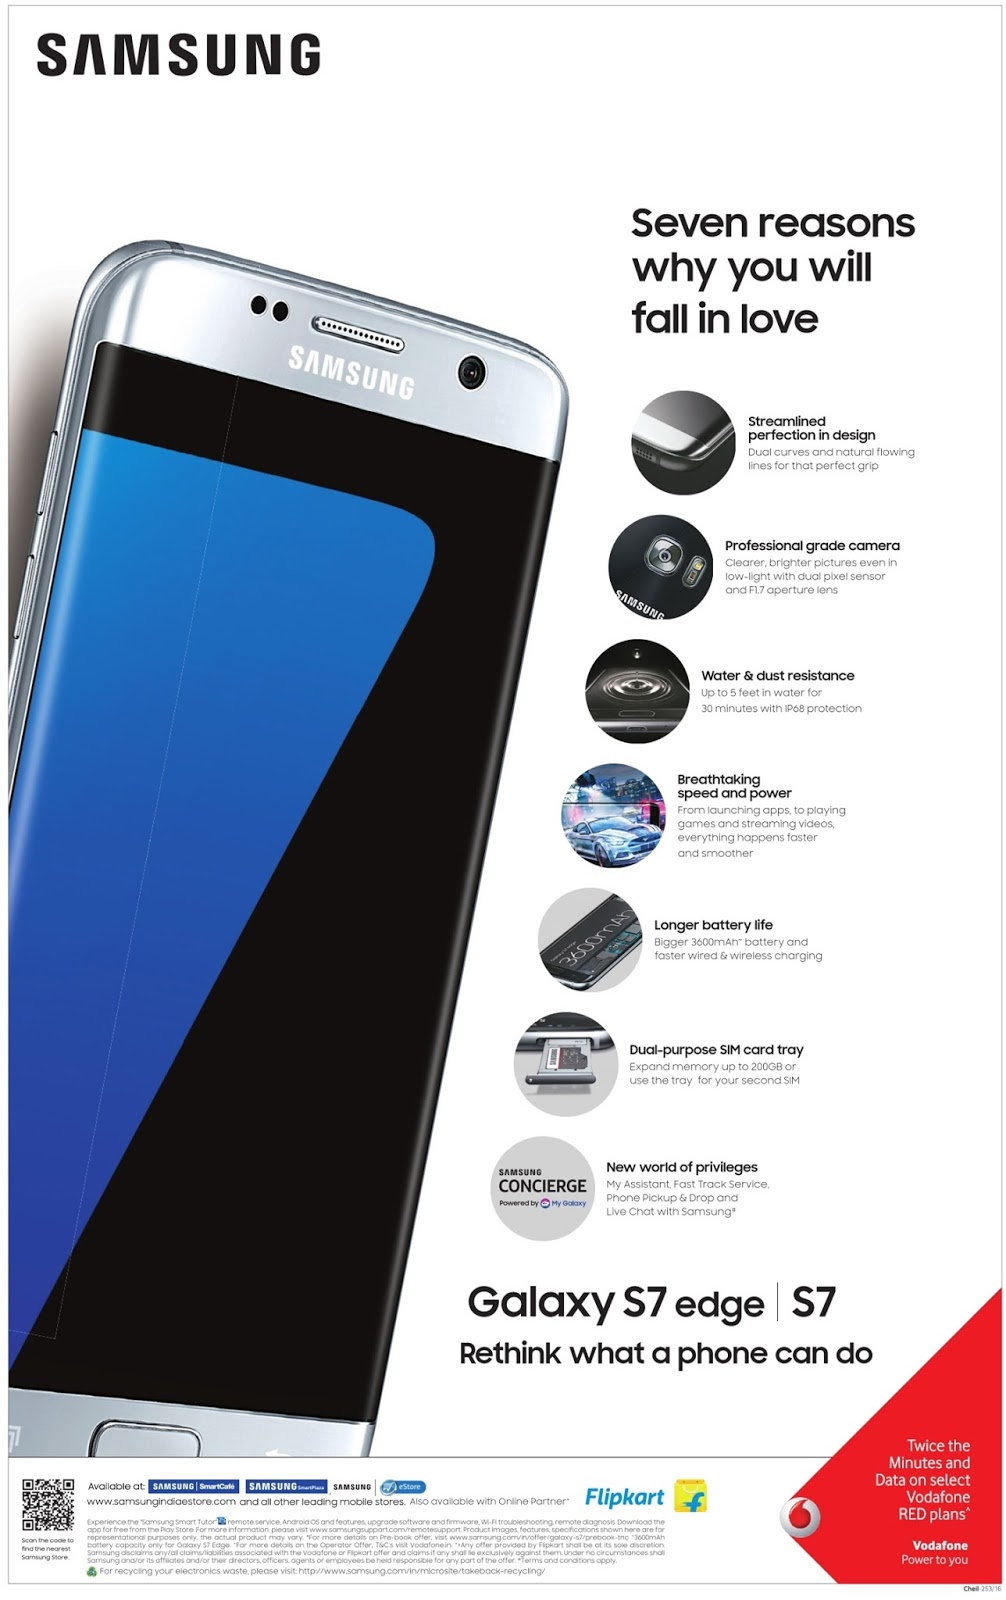 Pre-book Galaxy S7 edge and avail a great offer.